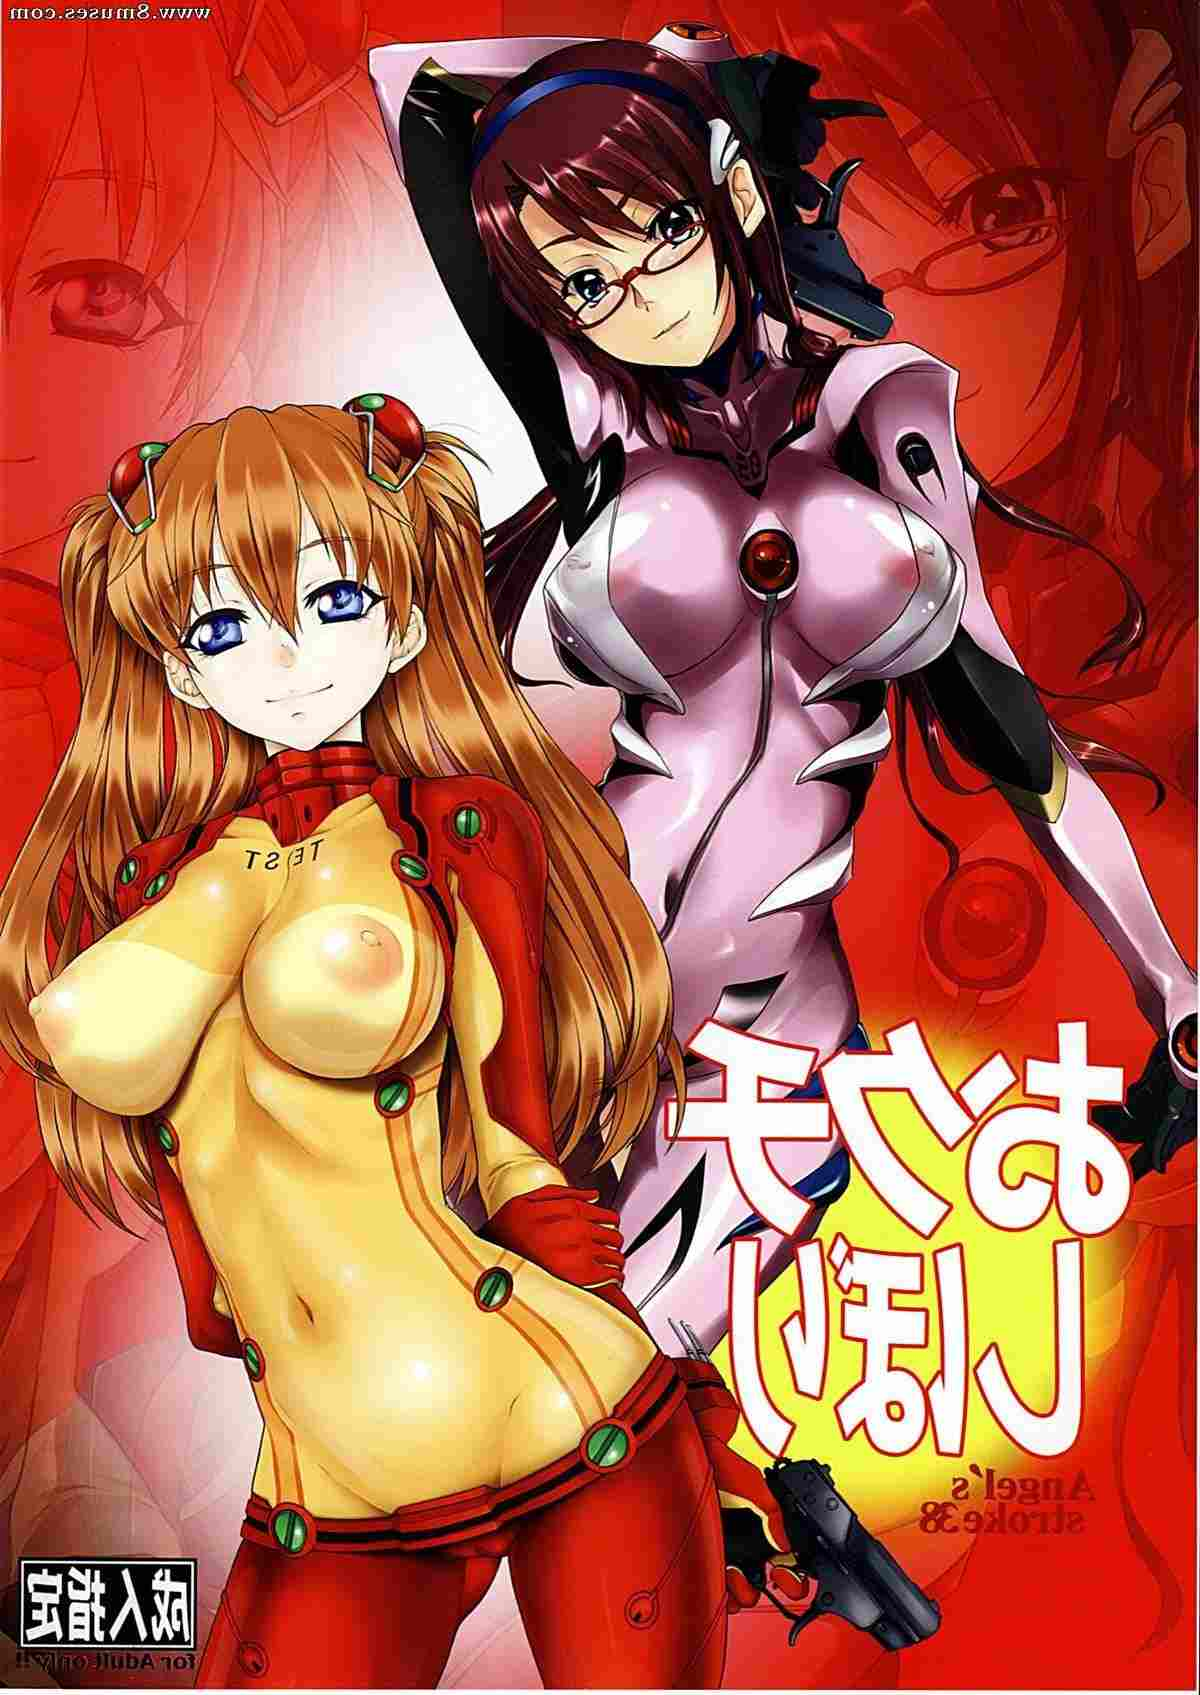 Hentai-and-Manga-English/Kutani/Manga Manga__8muses_-_Sex_and_Porn_Comics_24.jpg